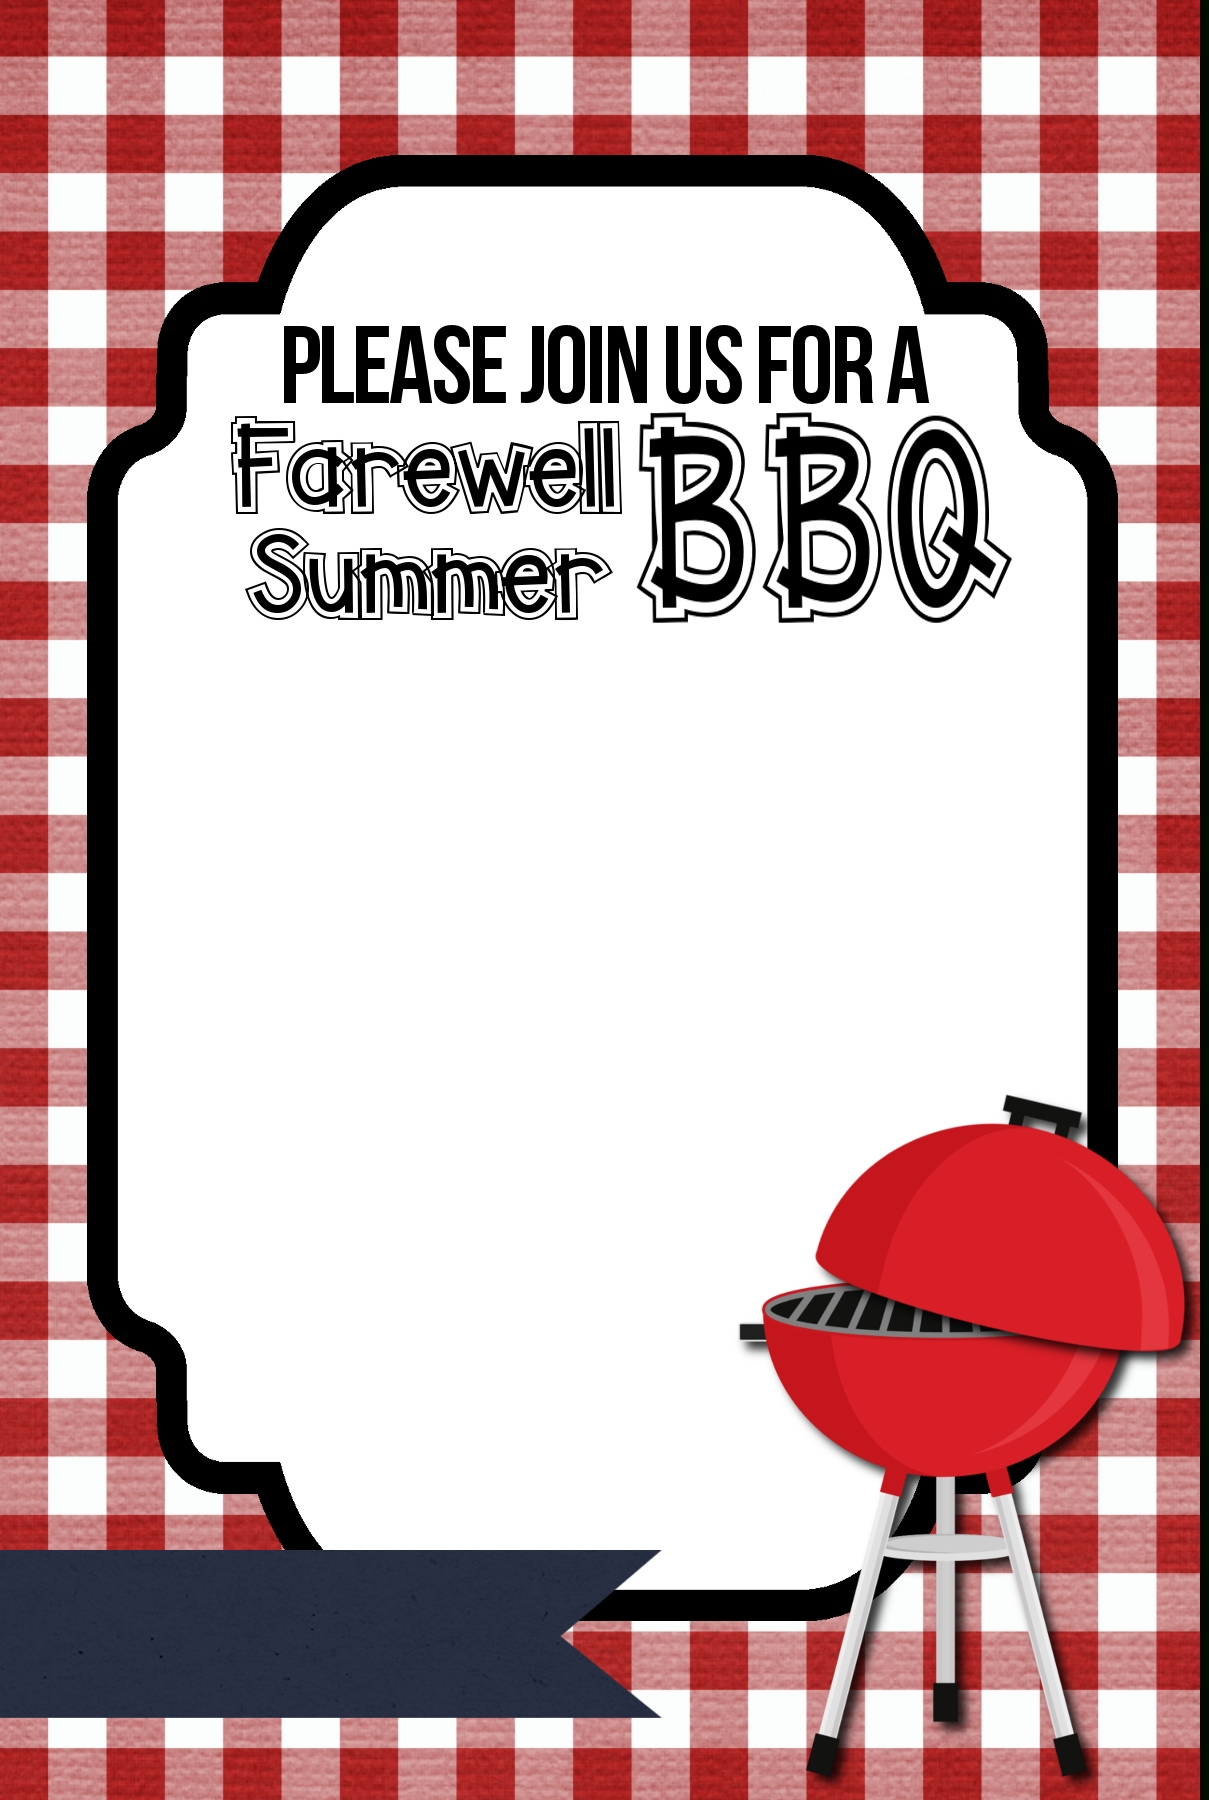 birthday cookout invitation templates ; summer-cookout-invitation-template_summer-cookout-invitation-template-papel-lenguasalacarta-on-cookout-invitation-template-best-invitations-images